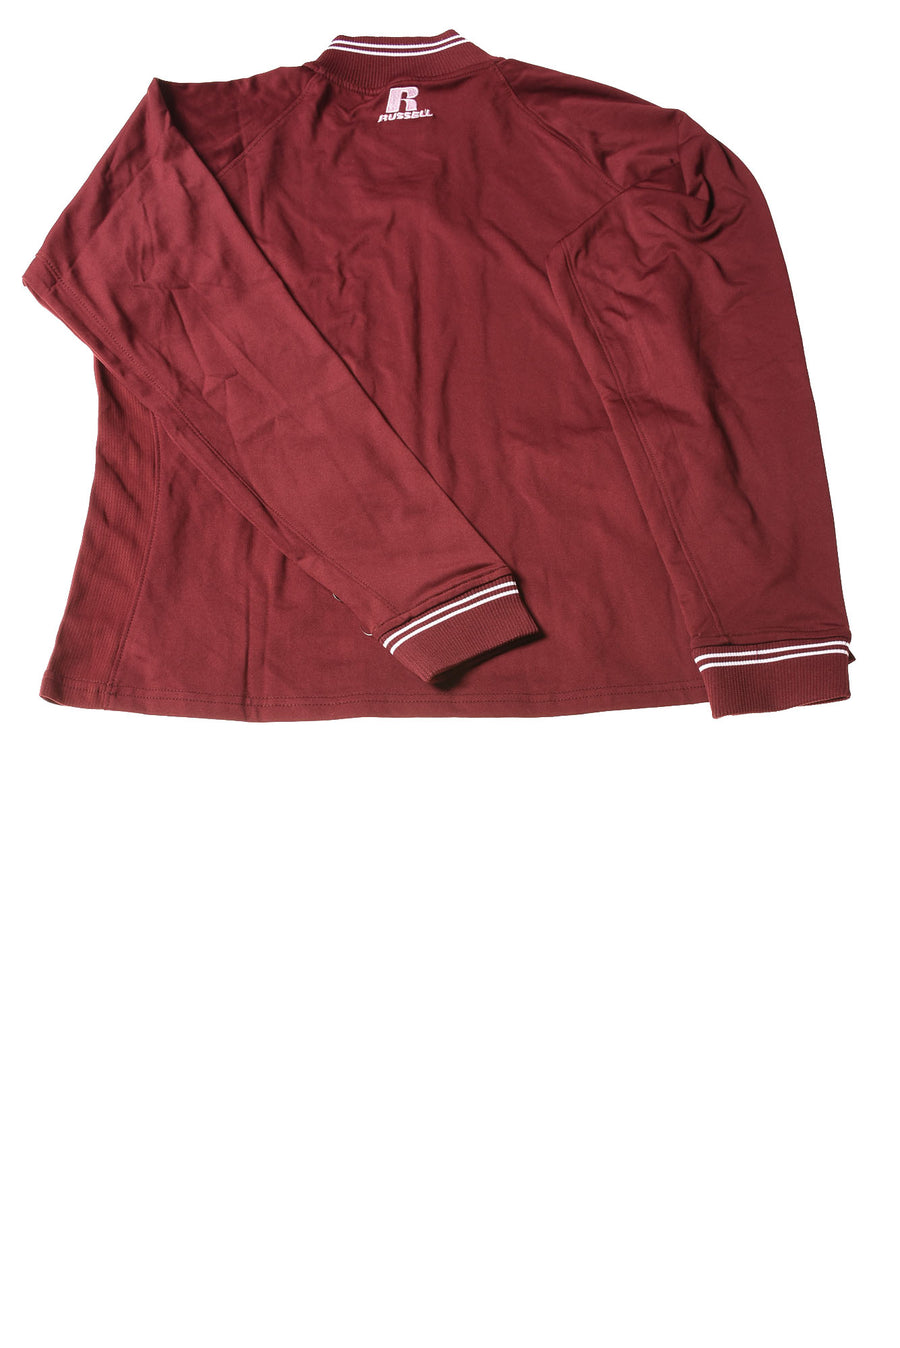 NEW Russell Women's Jacket Large Burgandy